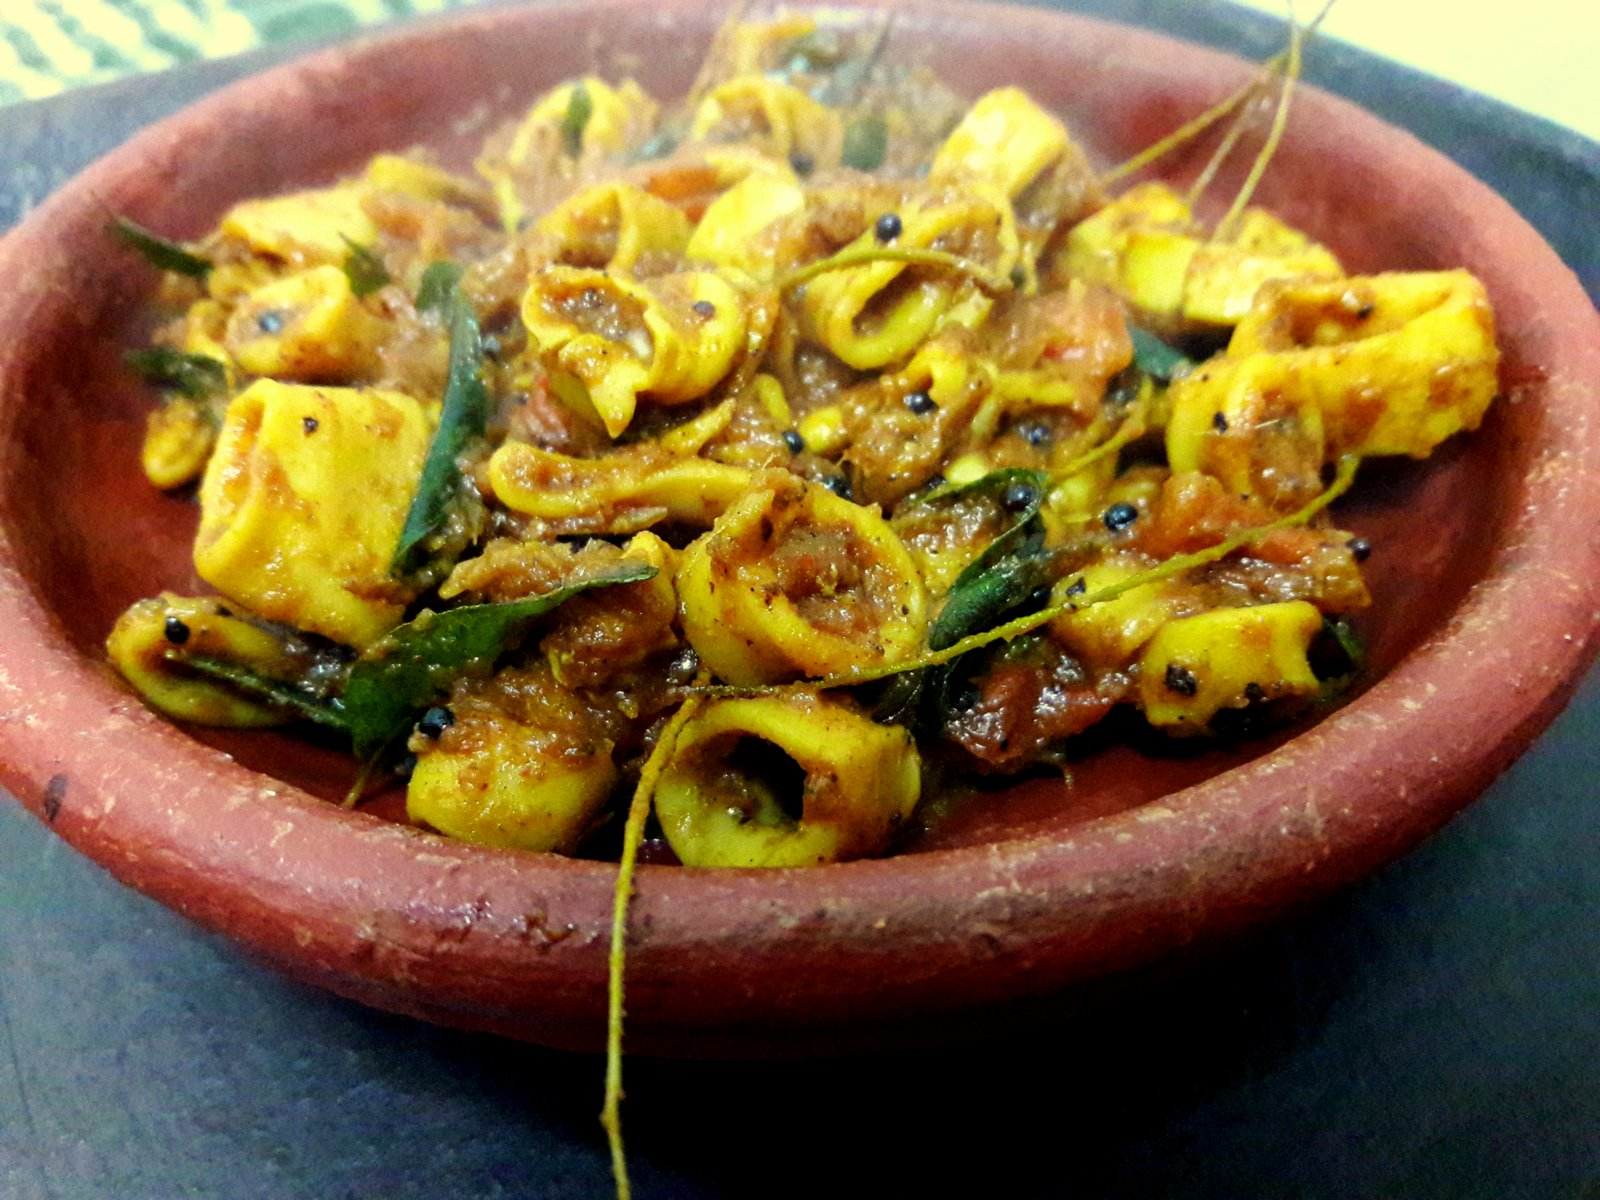 Calamari roast recipe kerala style squid by archanas kitchen calamari roast recipe kerala style squid forumfinder